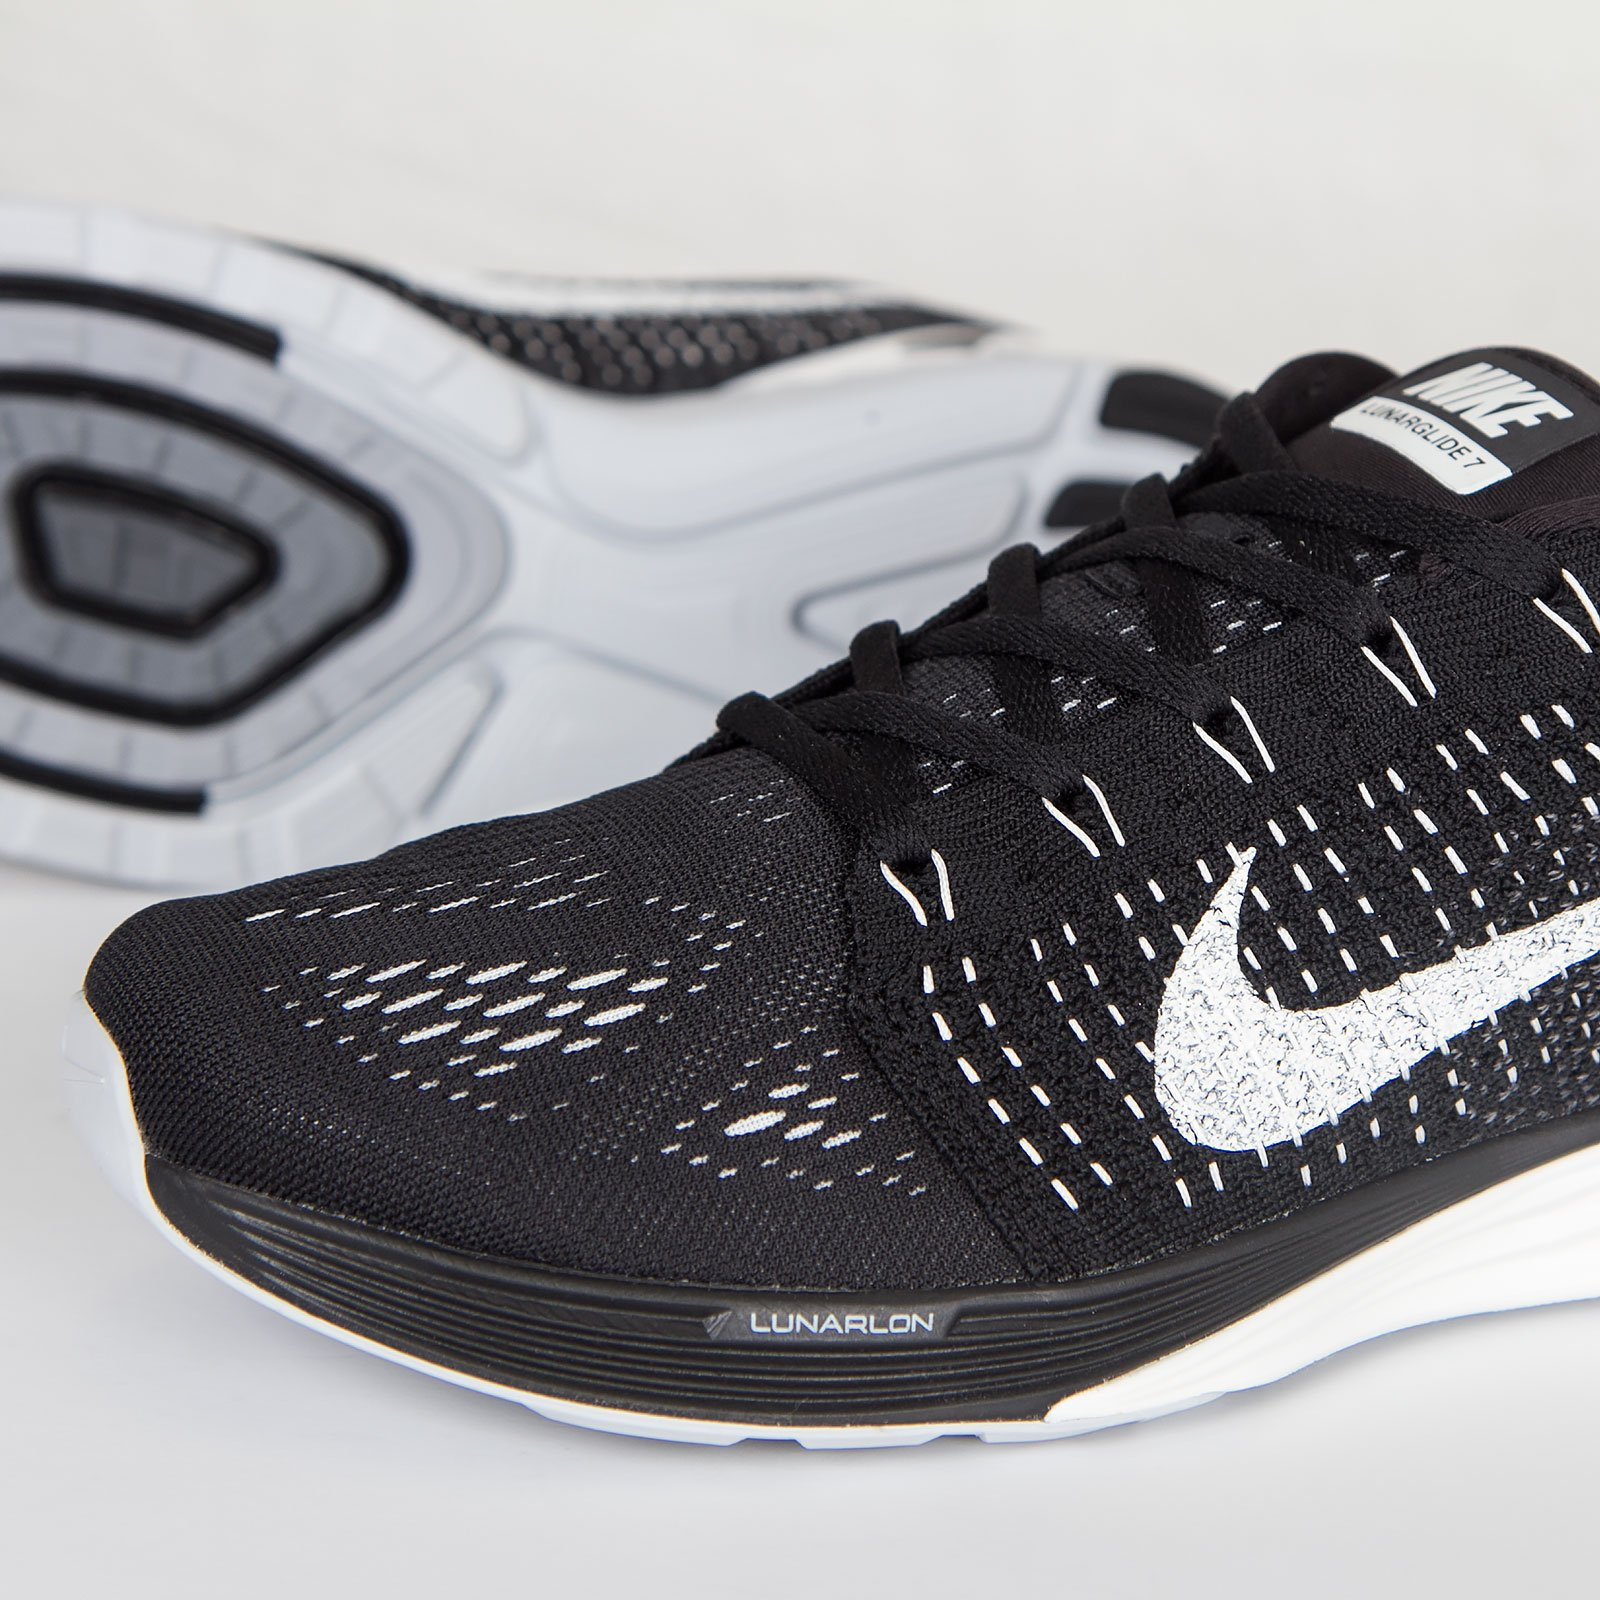 new concept 406b1 9a74d Nike Lunarglide 7 - 747355-001 - Sneakersnstuff | sneakers ...